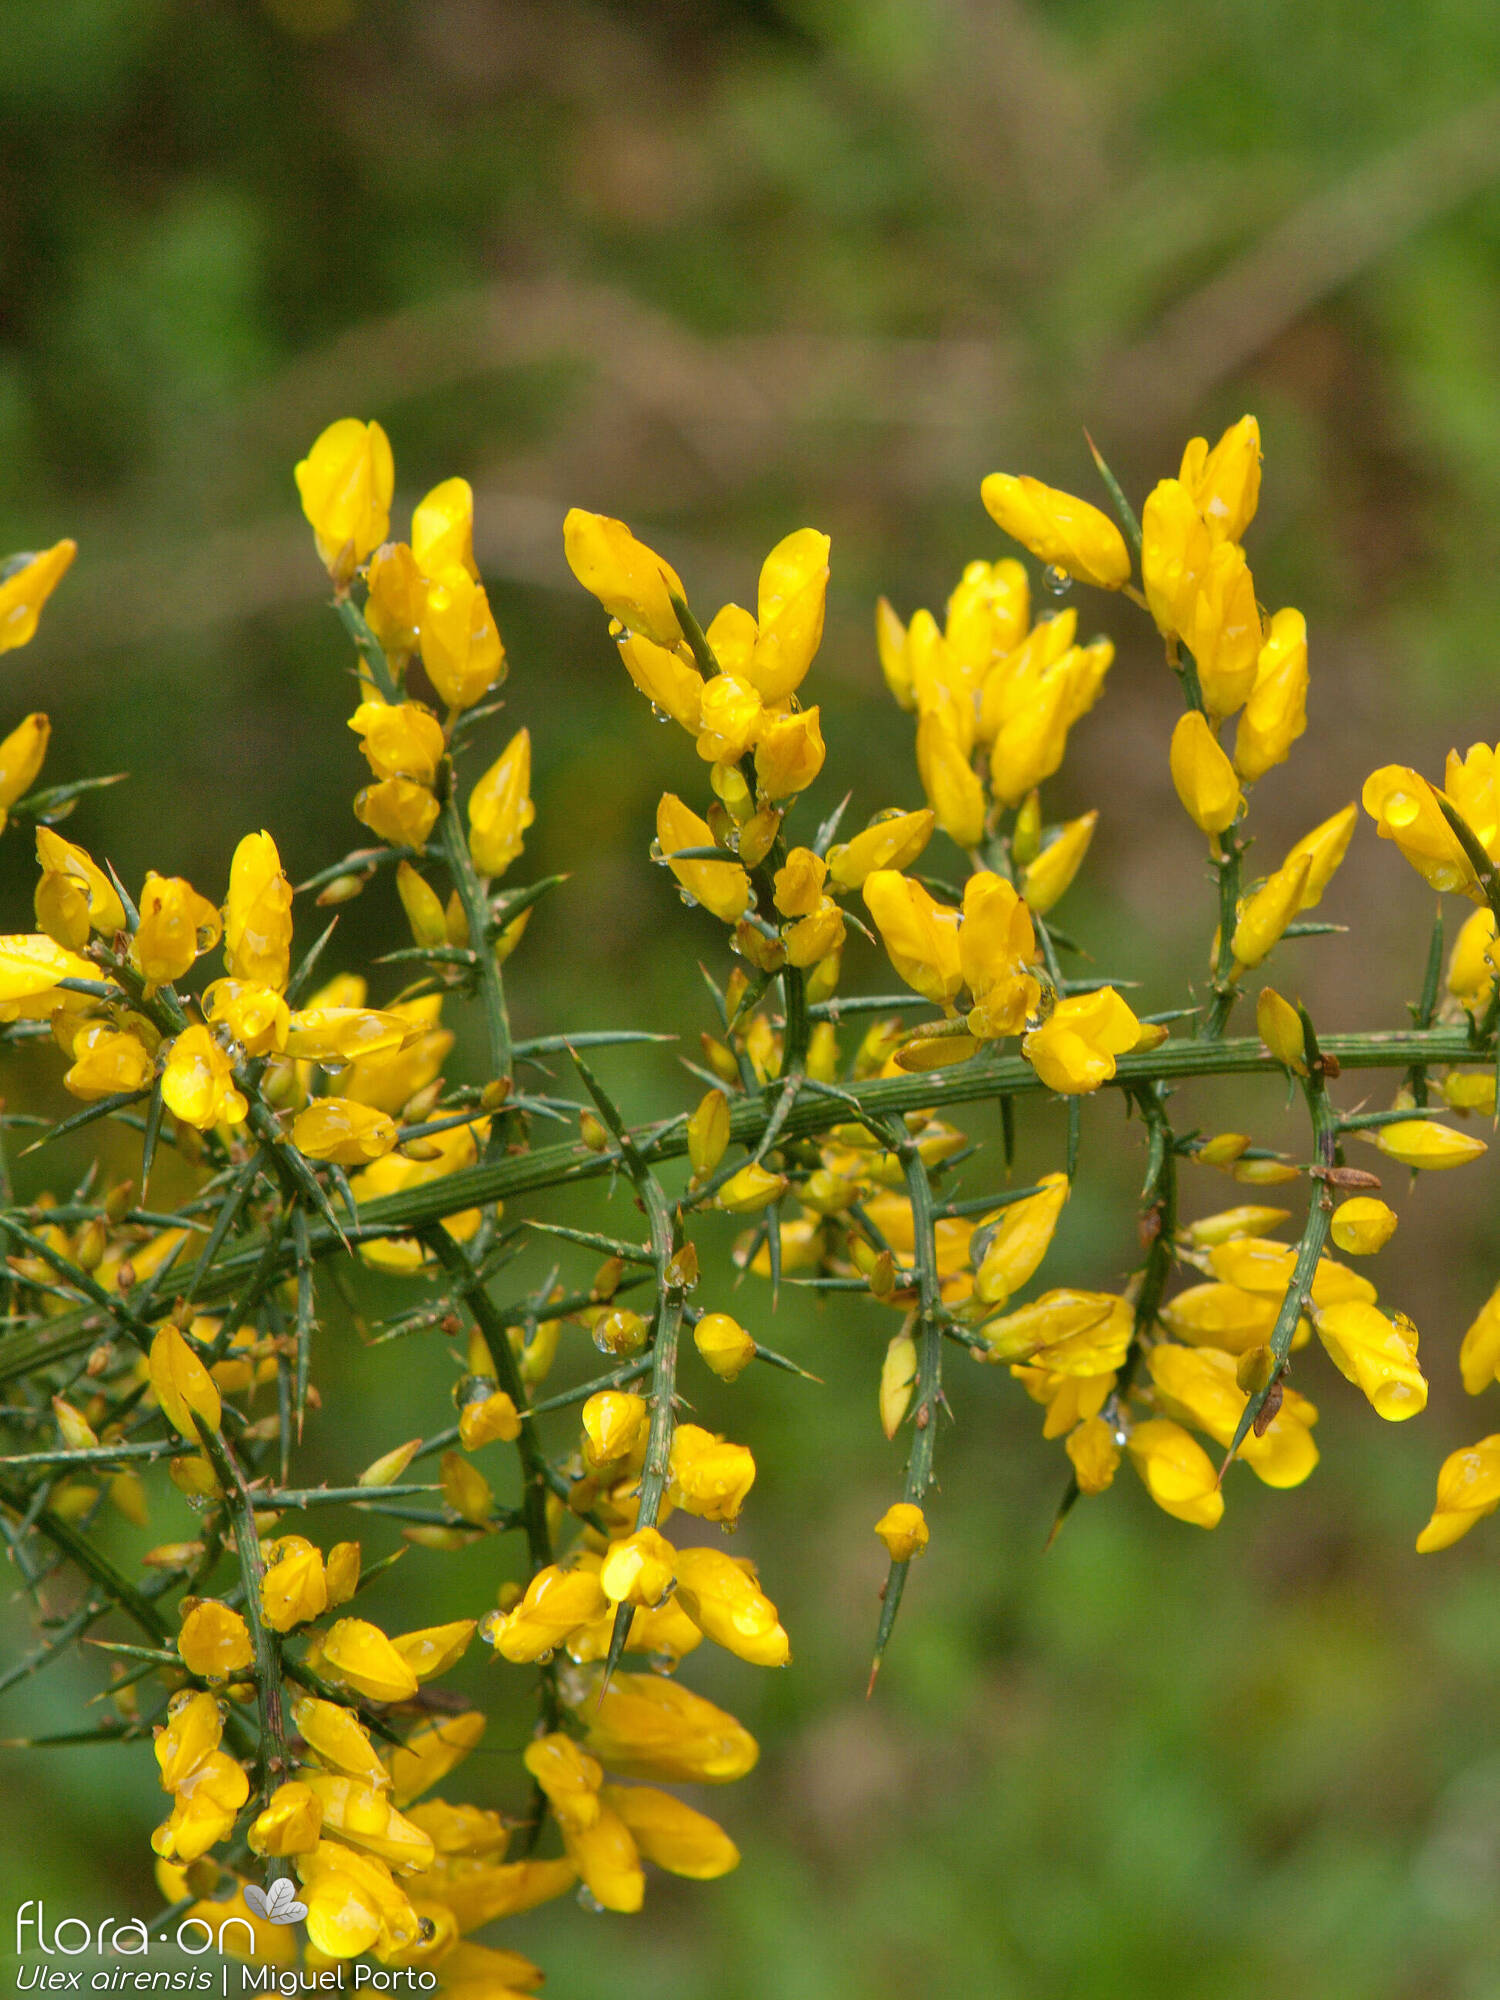 Ulex airensis - Flor (geral) | Miguel Porto; CC BY-NC 4.0